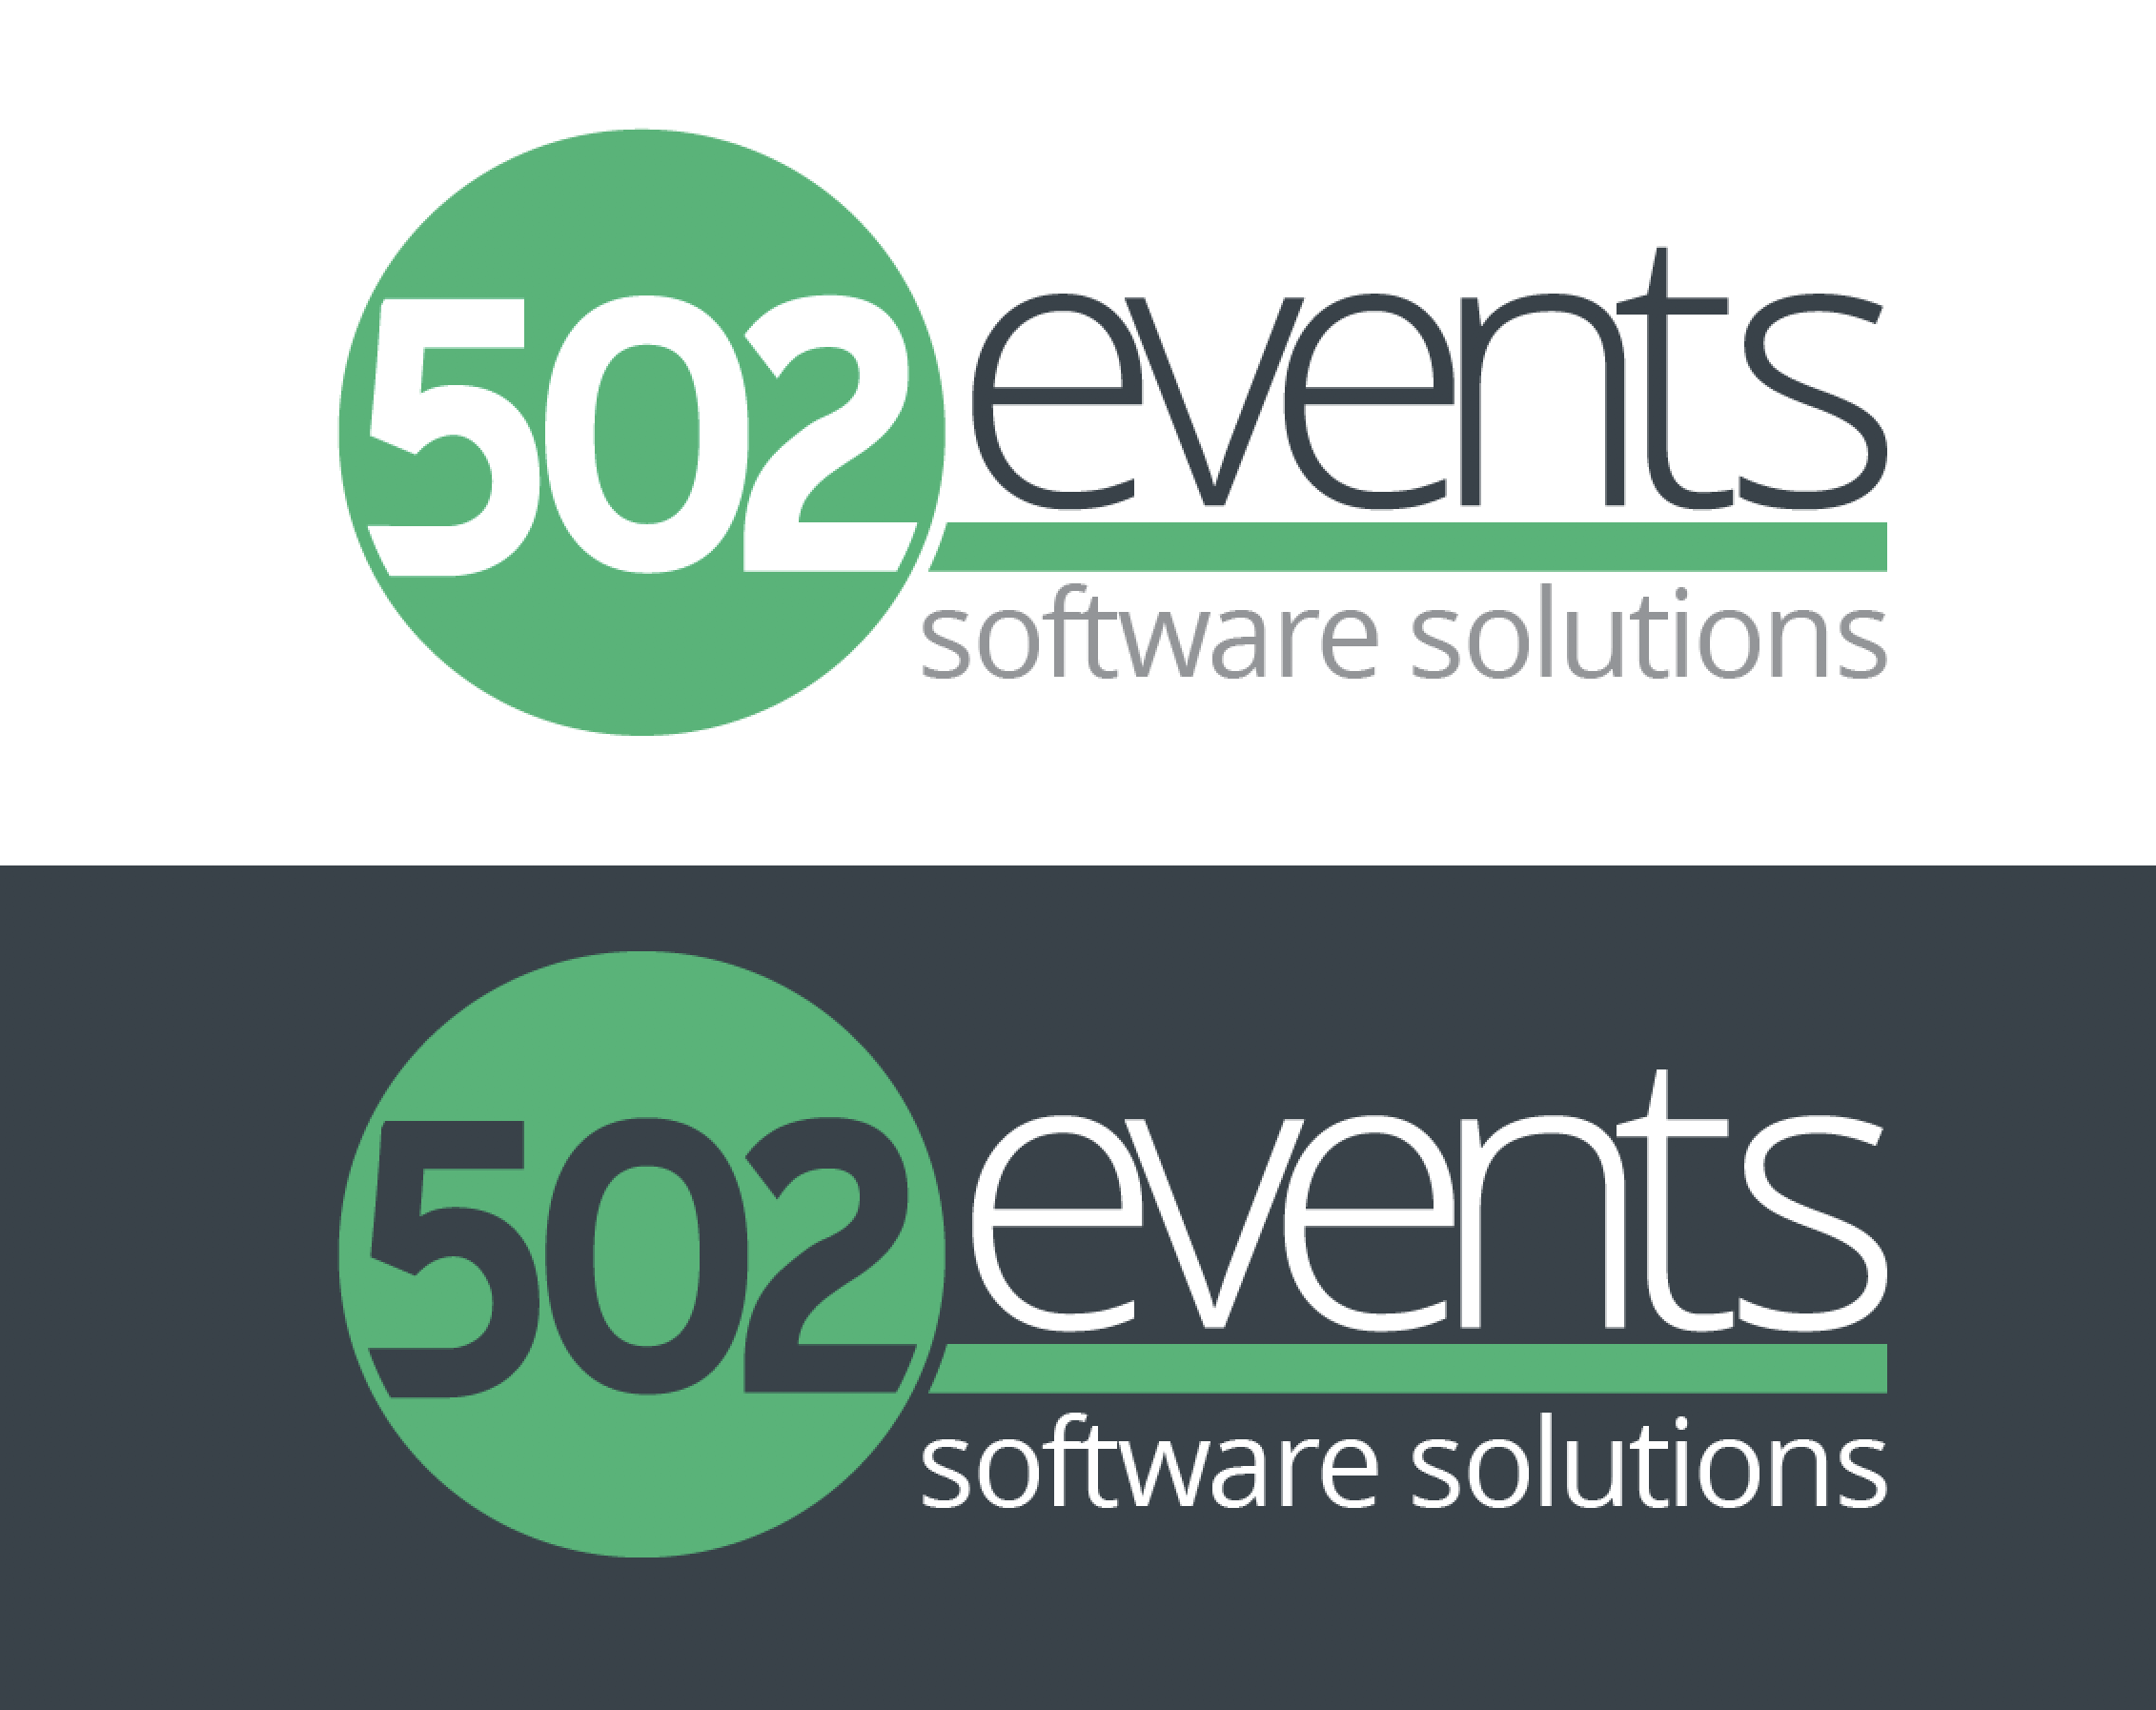 502 Events